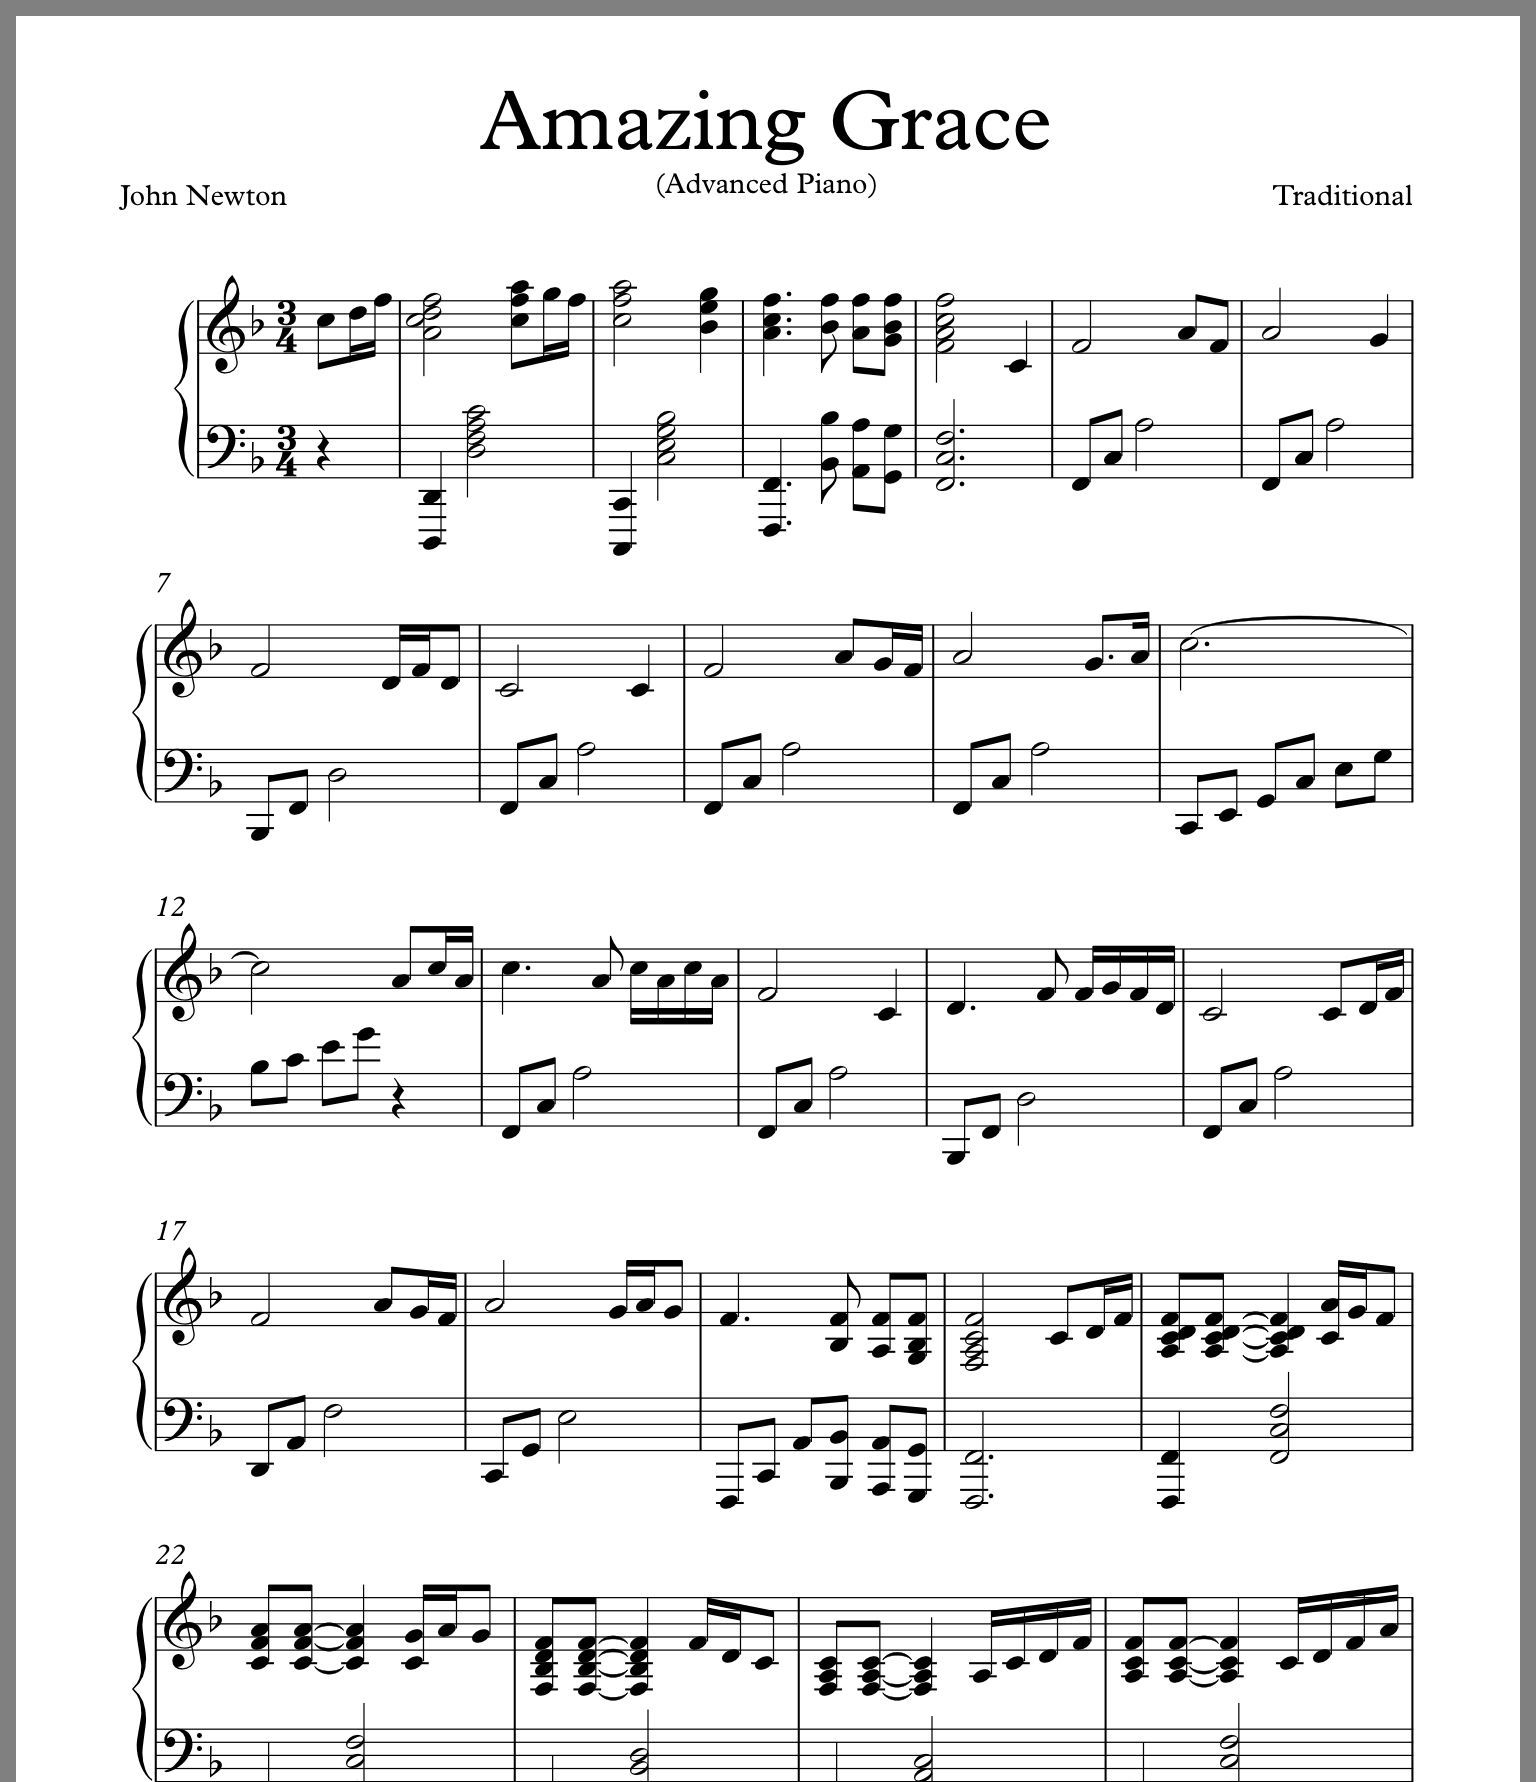 Pin By Sue Weingartner On Music Amazing Grace Sheet Music Music